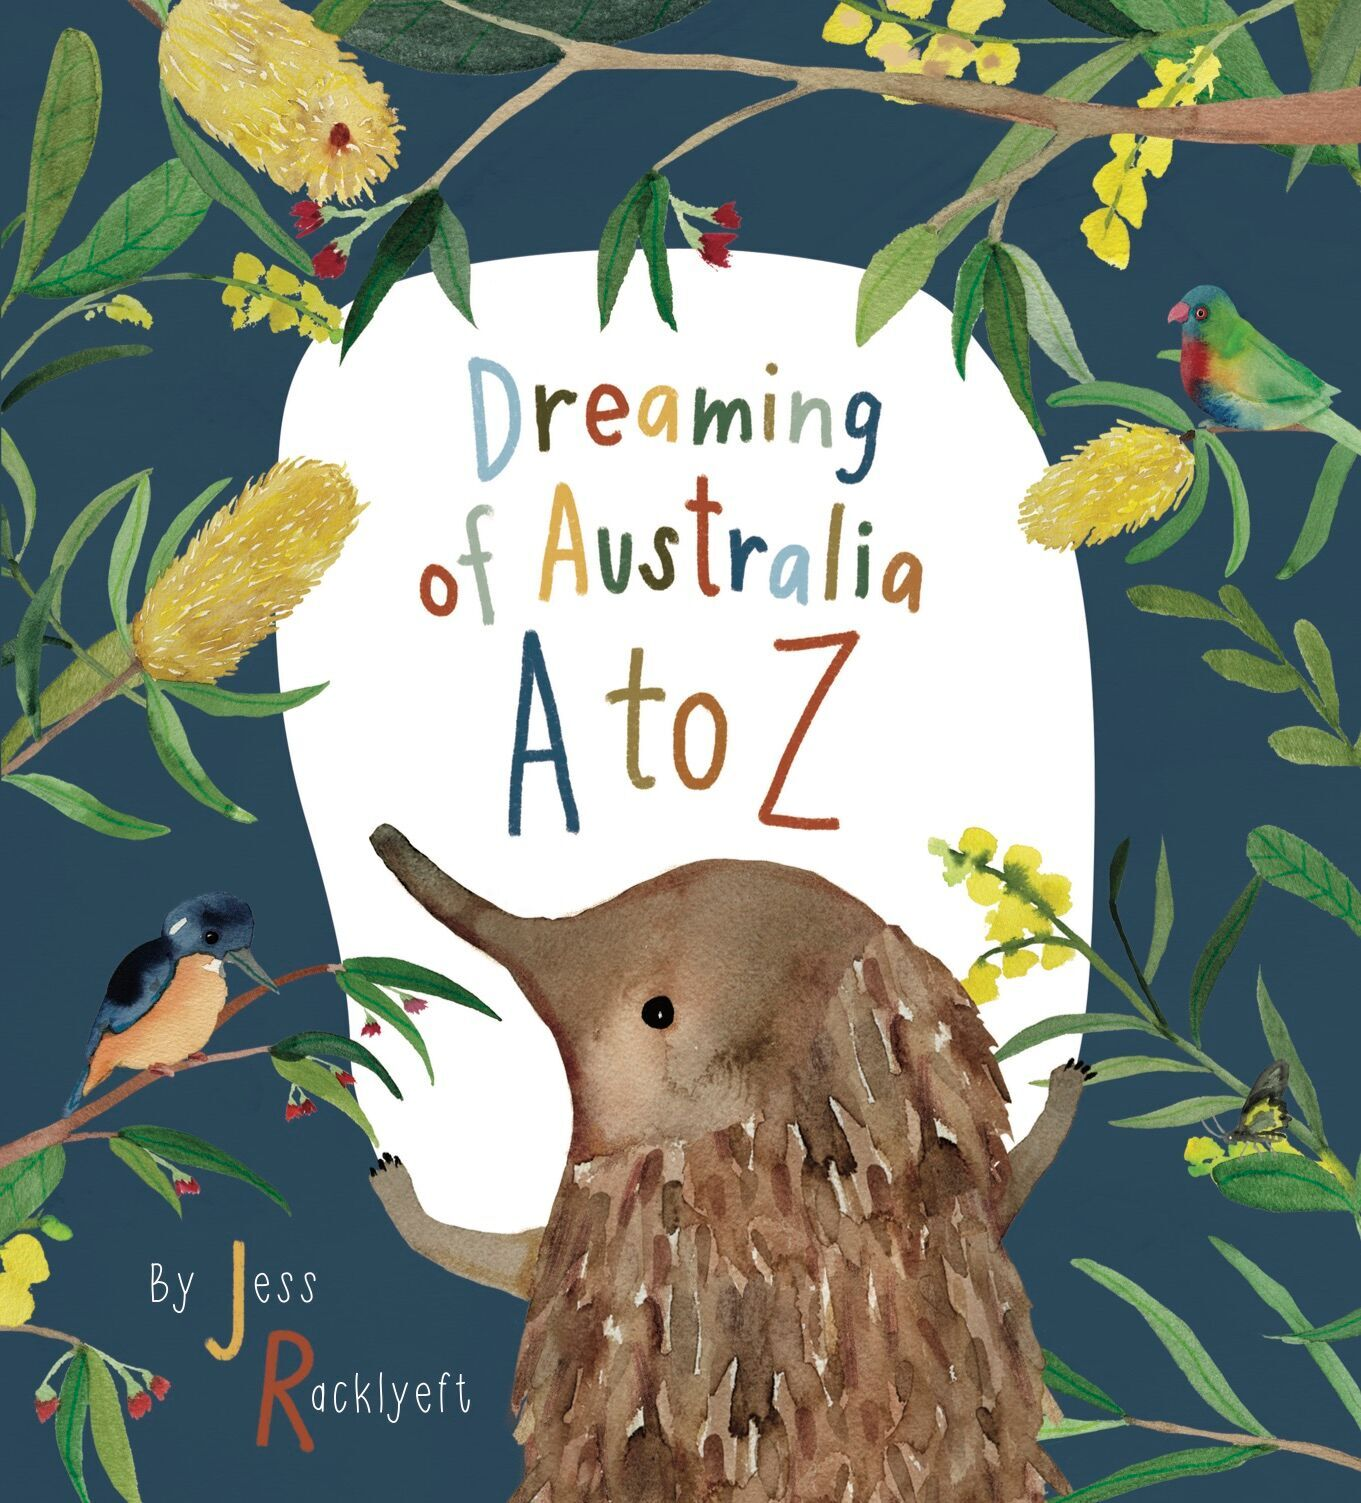 dreaming-of-australia-a-to-z.jpg